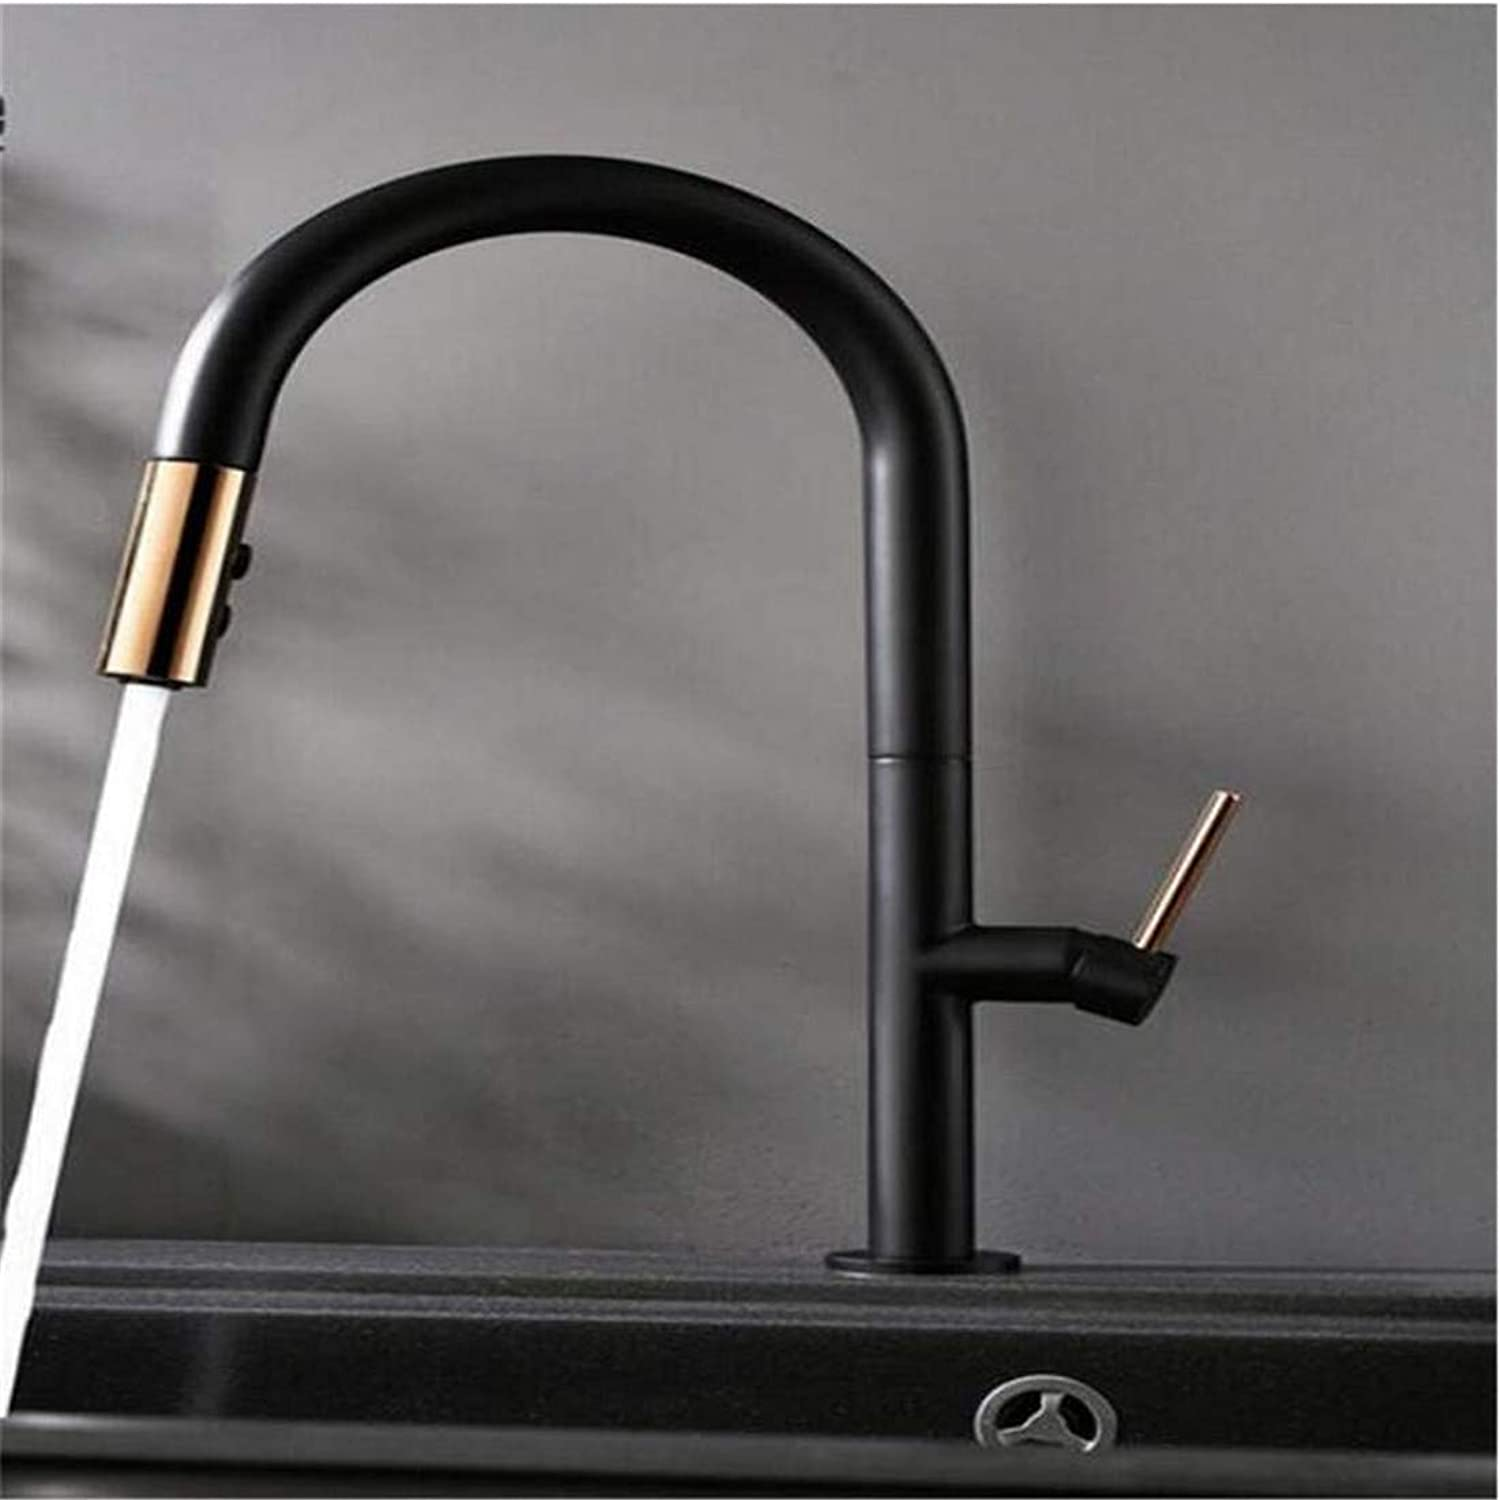 Modern High Quality Vintage Faucet Mixer Faucet Mixer Kitchen Faucets Pull Out Kitchen Tap